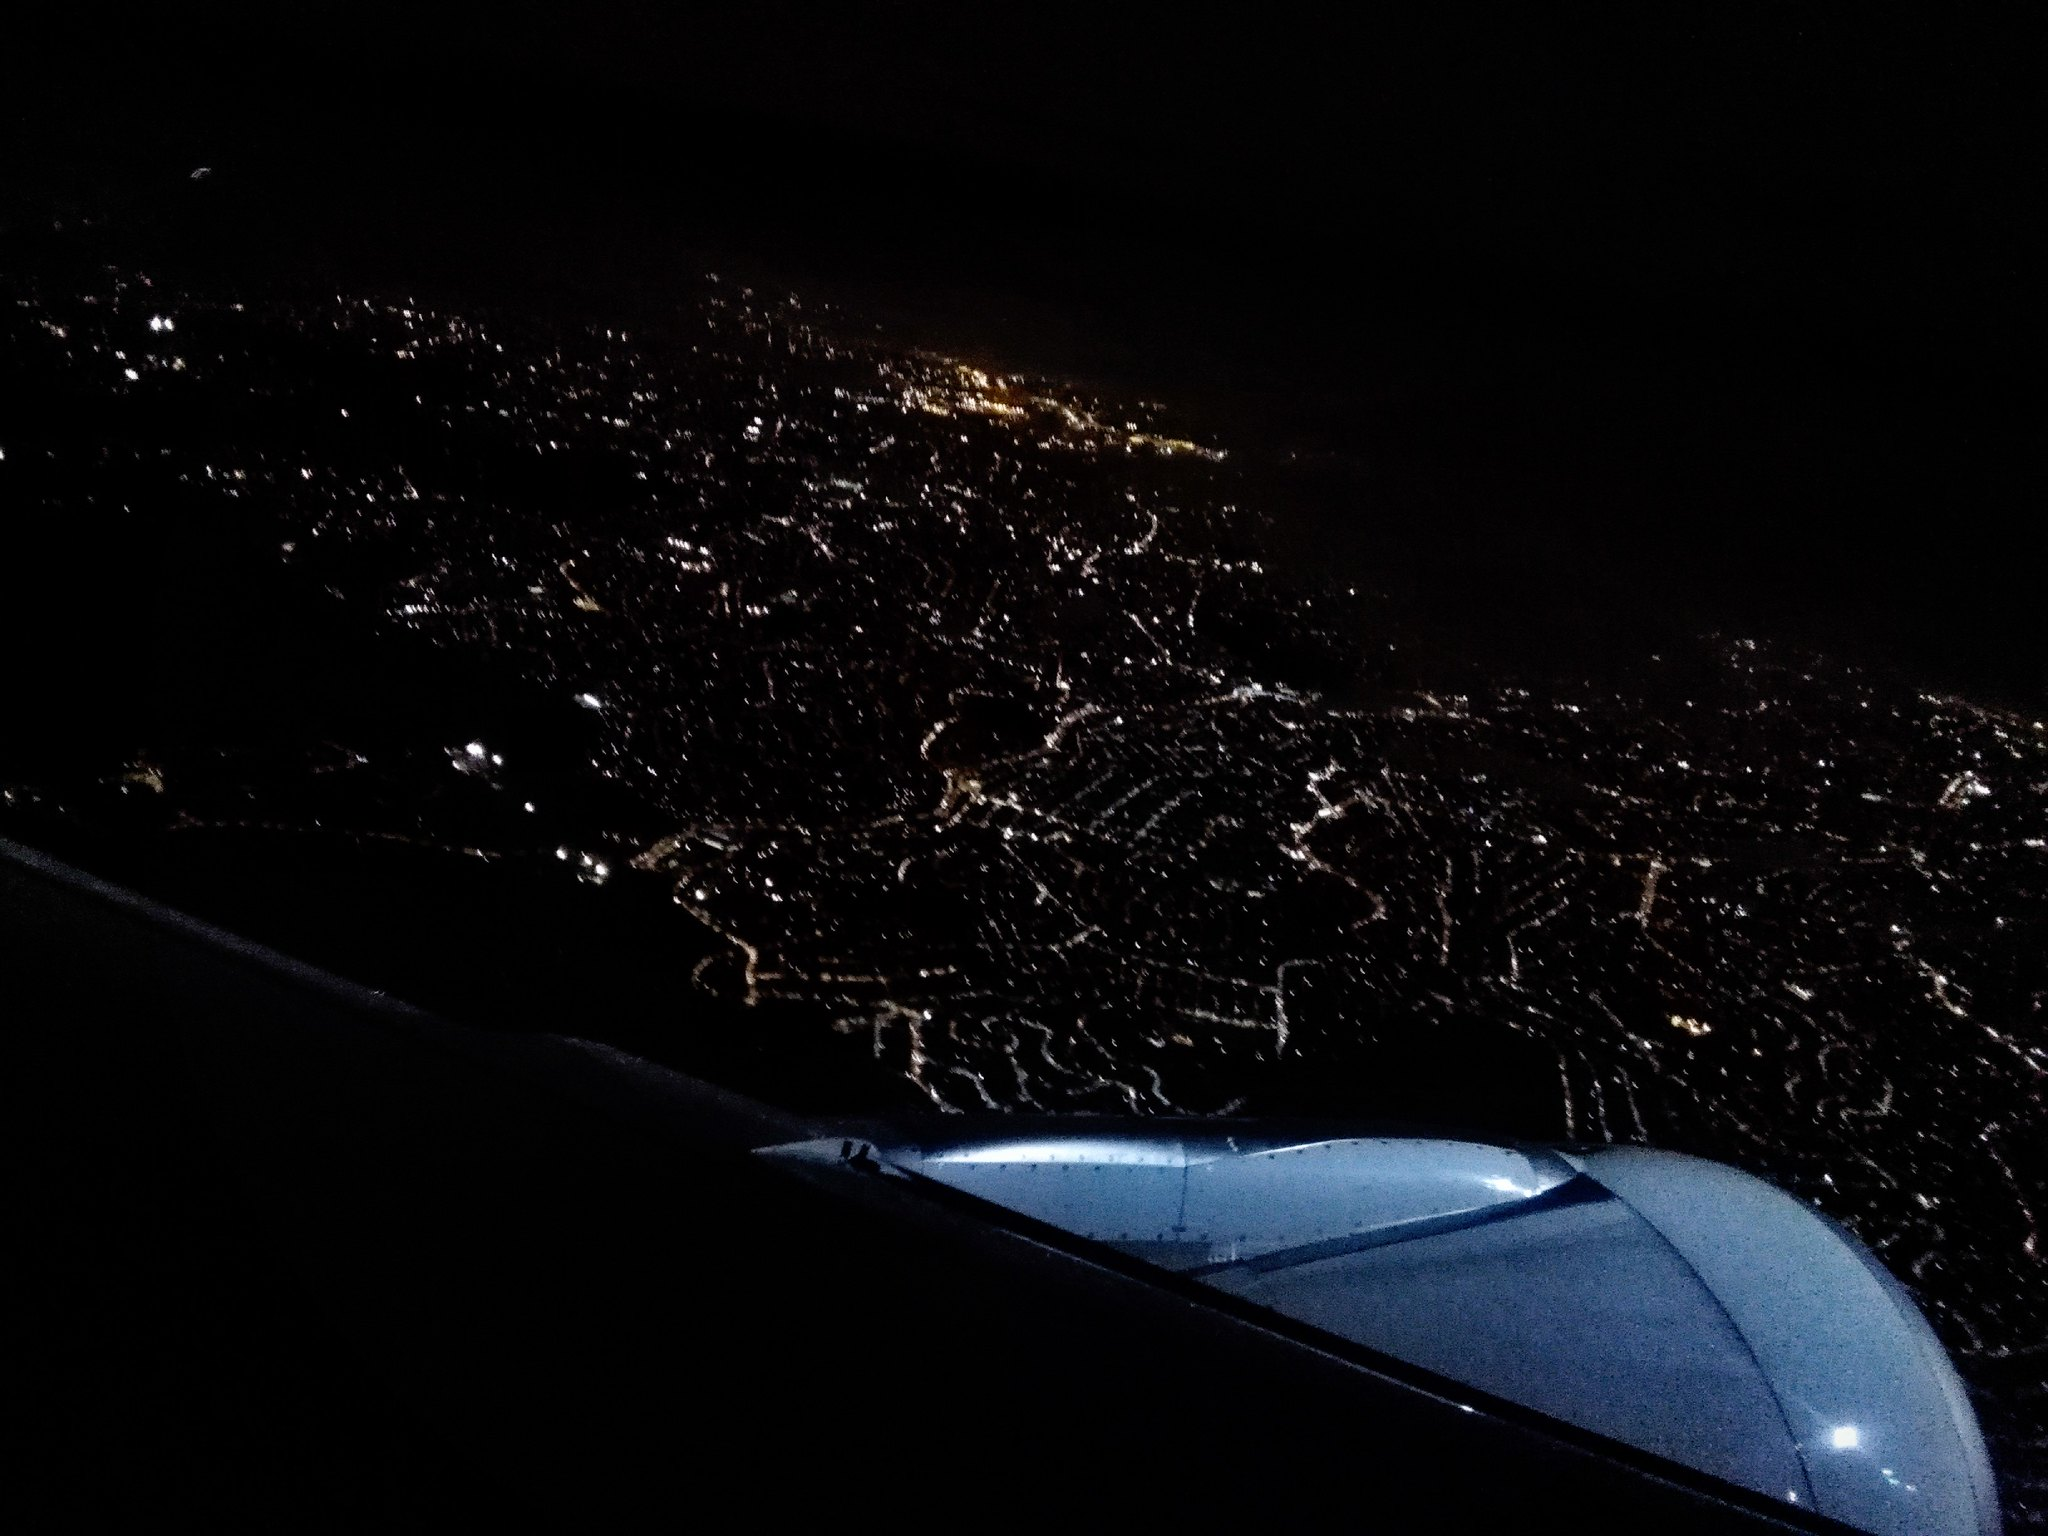 São Paulo at night from the air